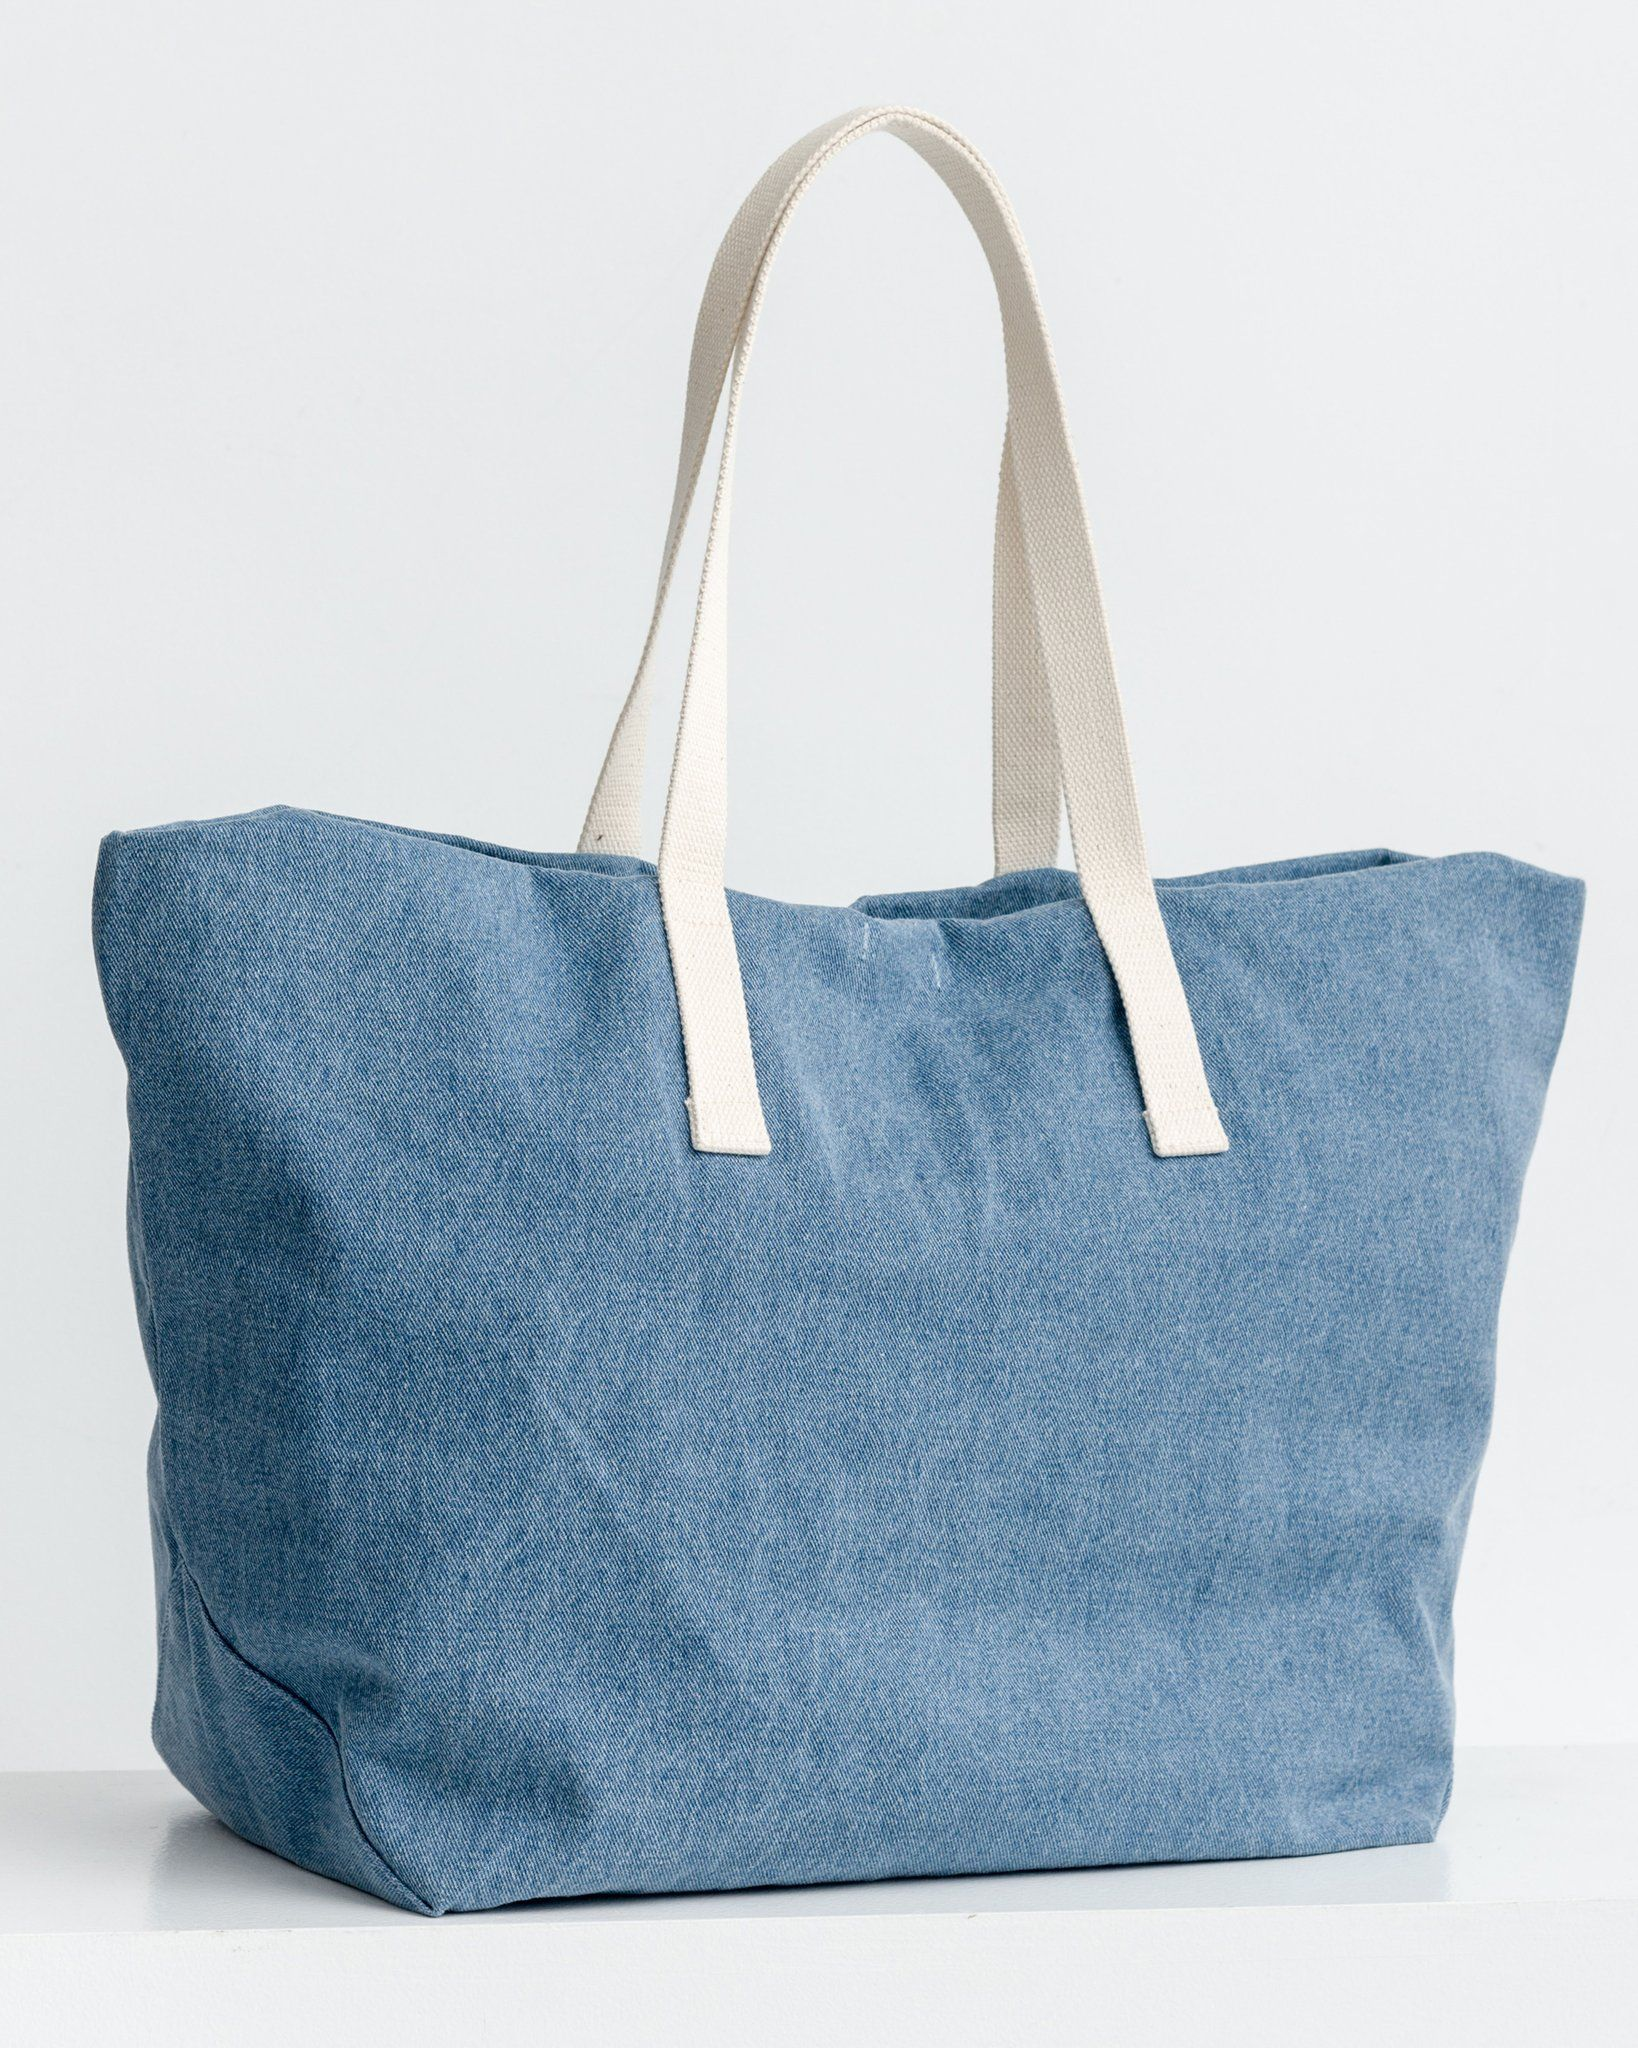 Forgot to Have Children Polyester Tote Bag by Dog is Good Yellow44; Blue One Bella Casa 72164TT18P 18 in